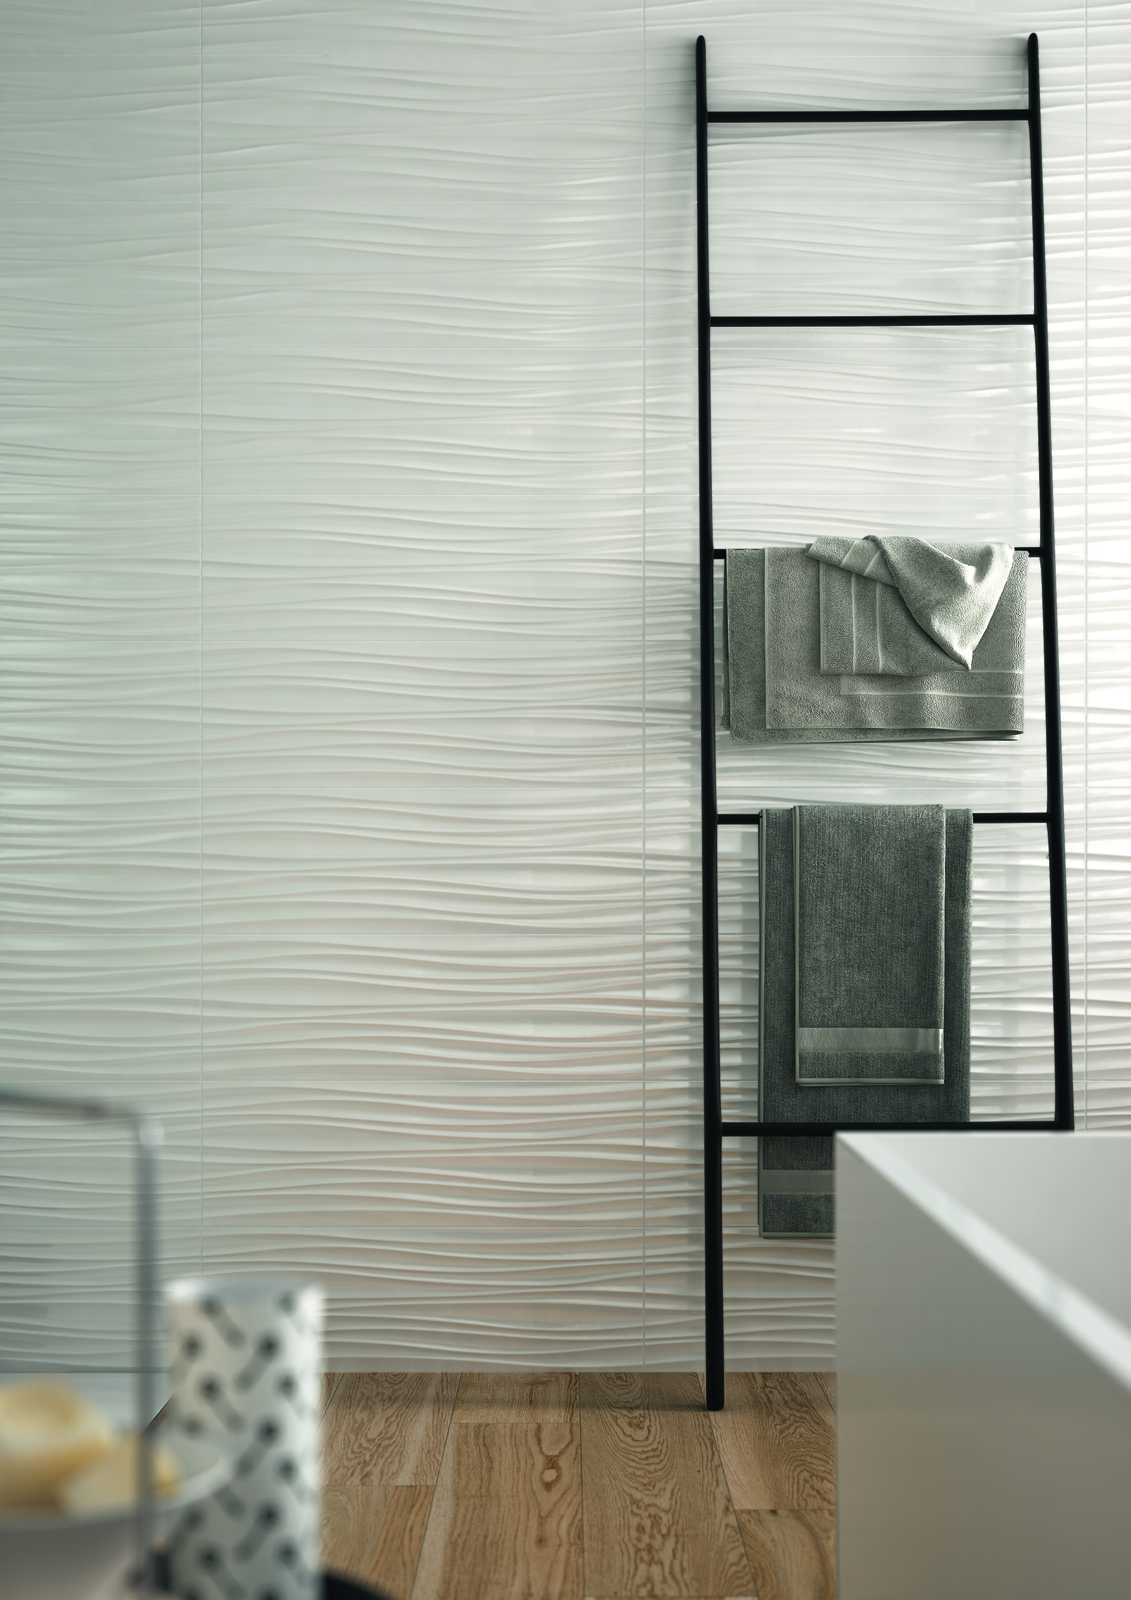 Absolute white 3d structure white wall tiles marazzi absolute white ceramic tiles marazzi7400 doublecrazyfo Images